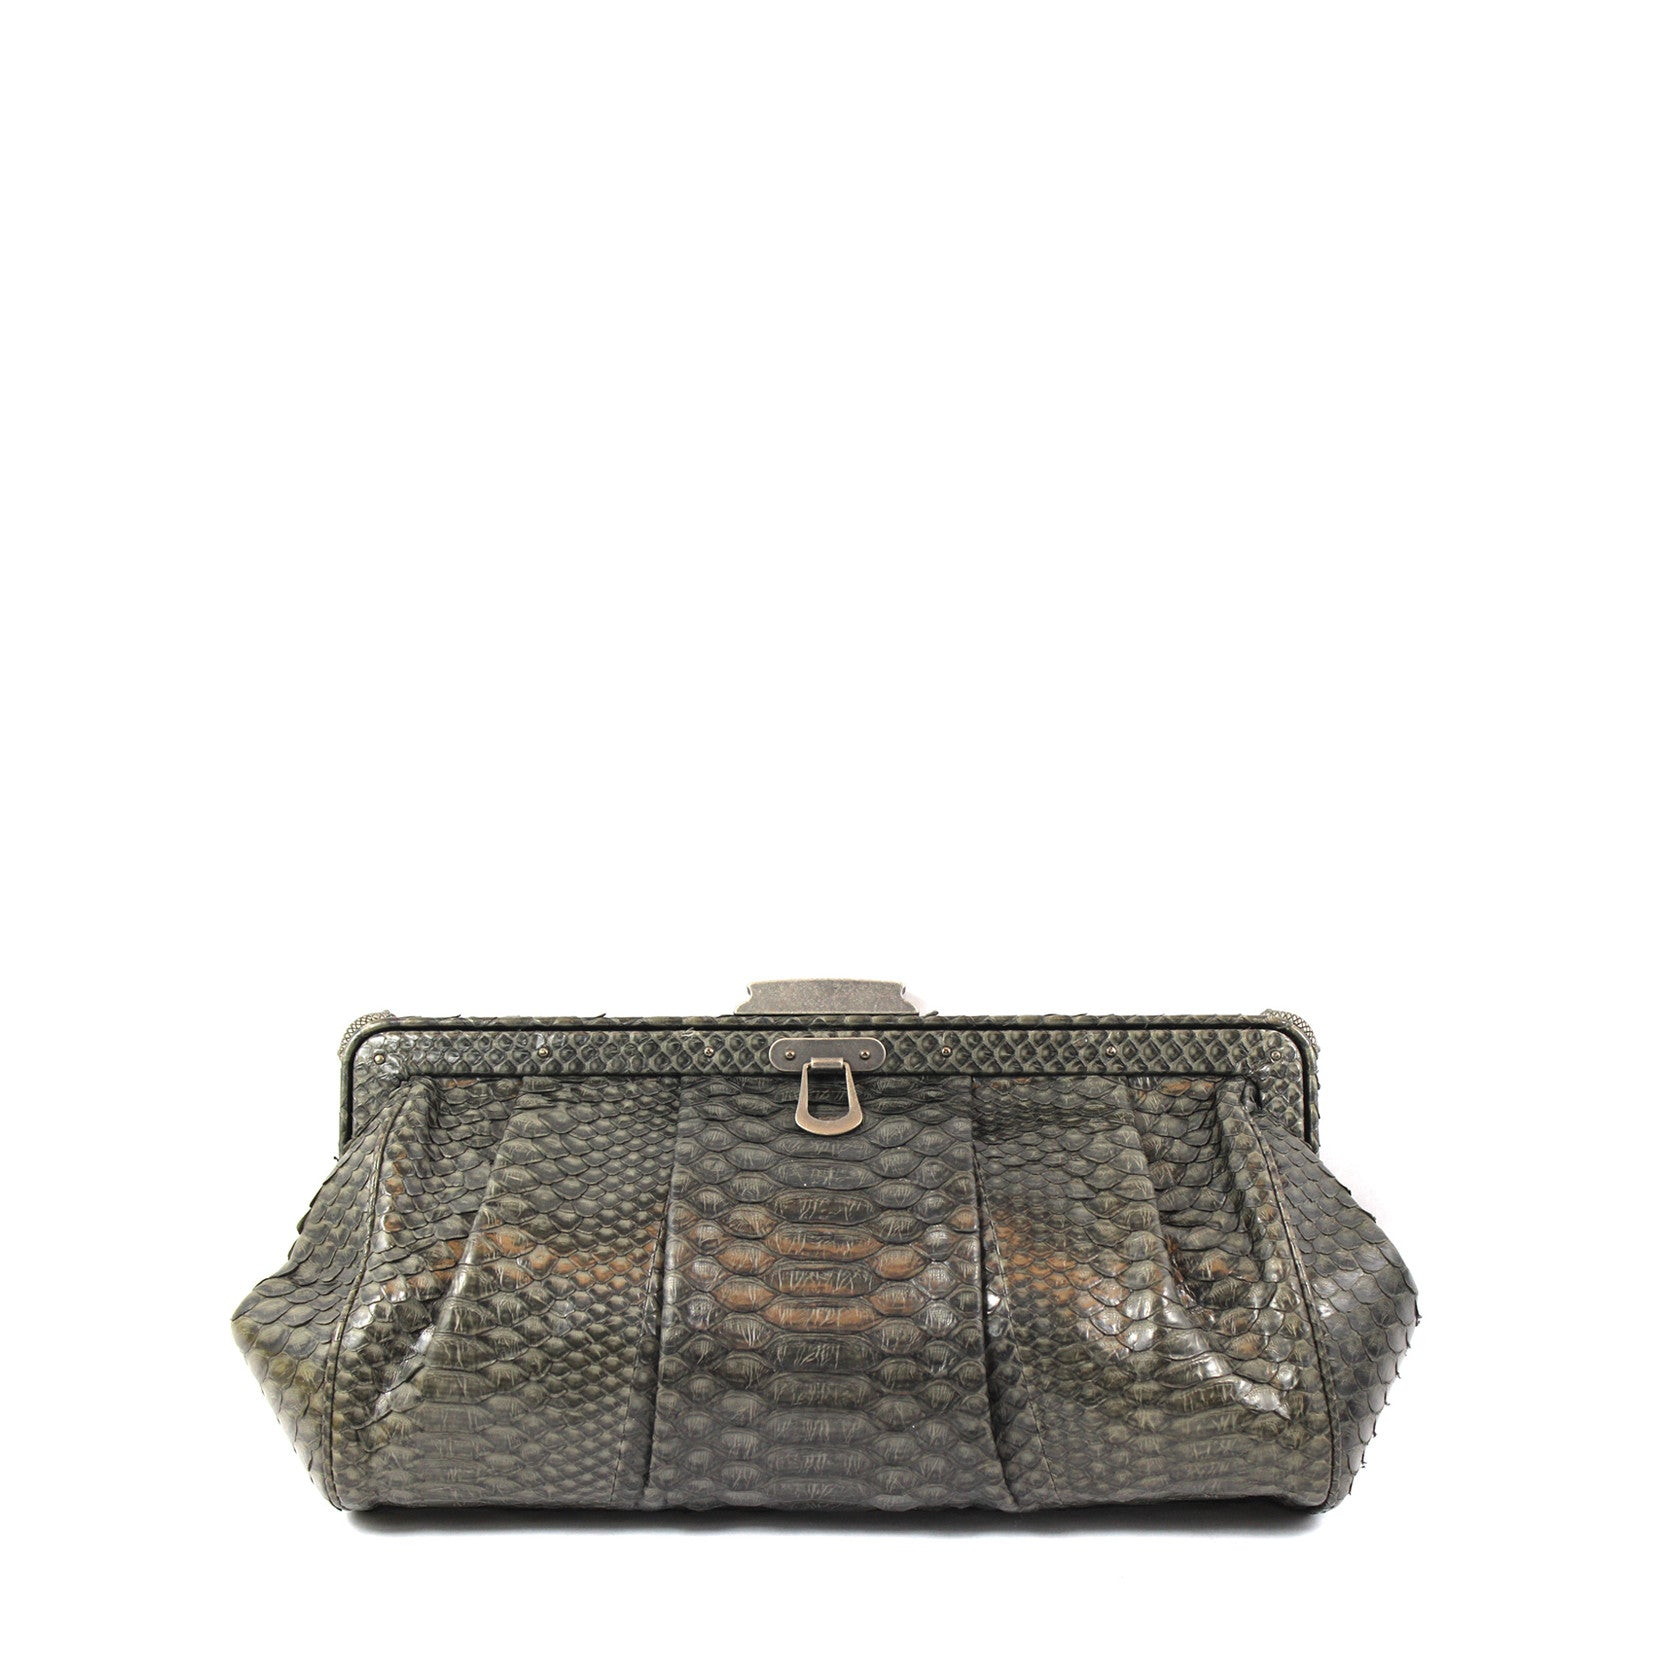 'SOLD' Elie Tahari Charcoal Snakskin Clutch